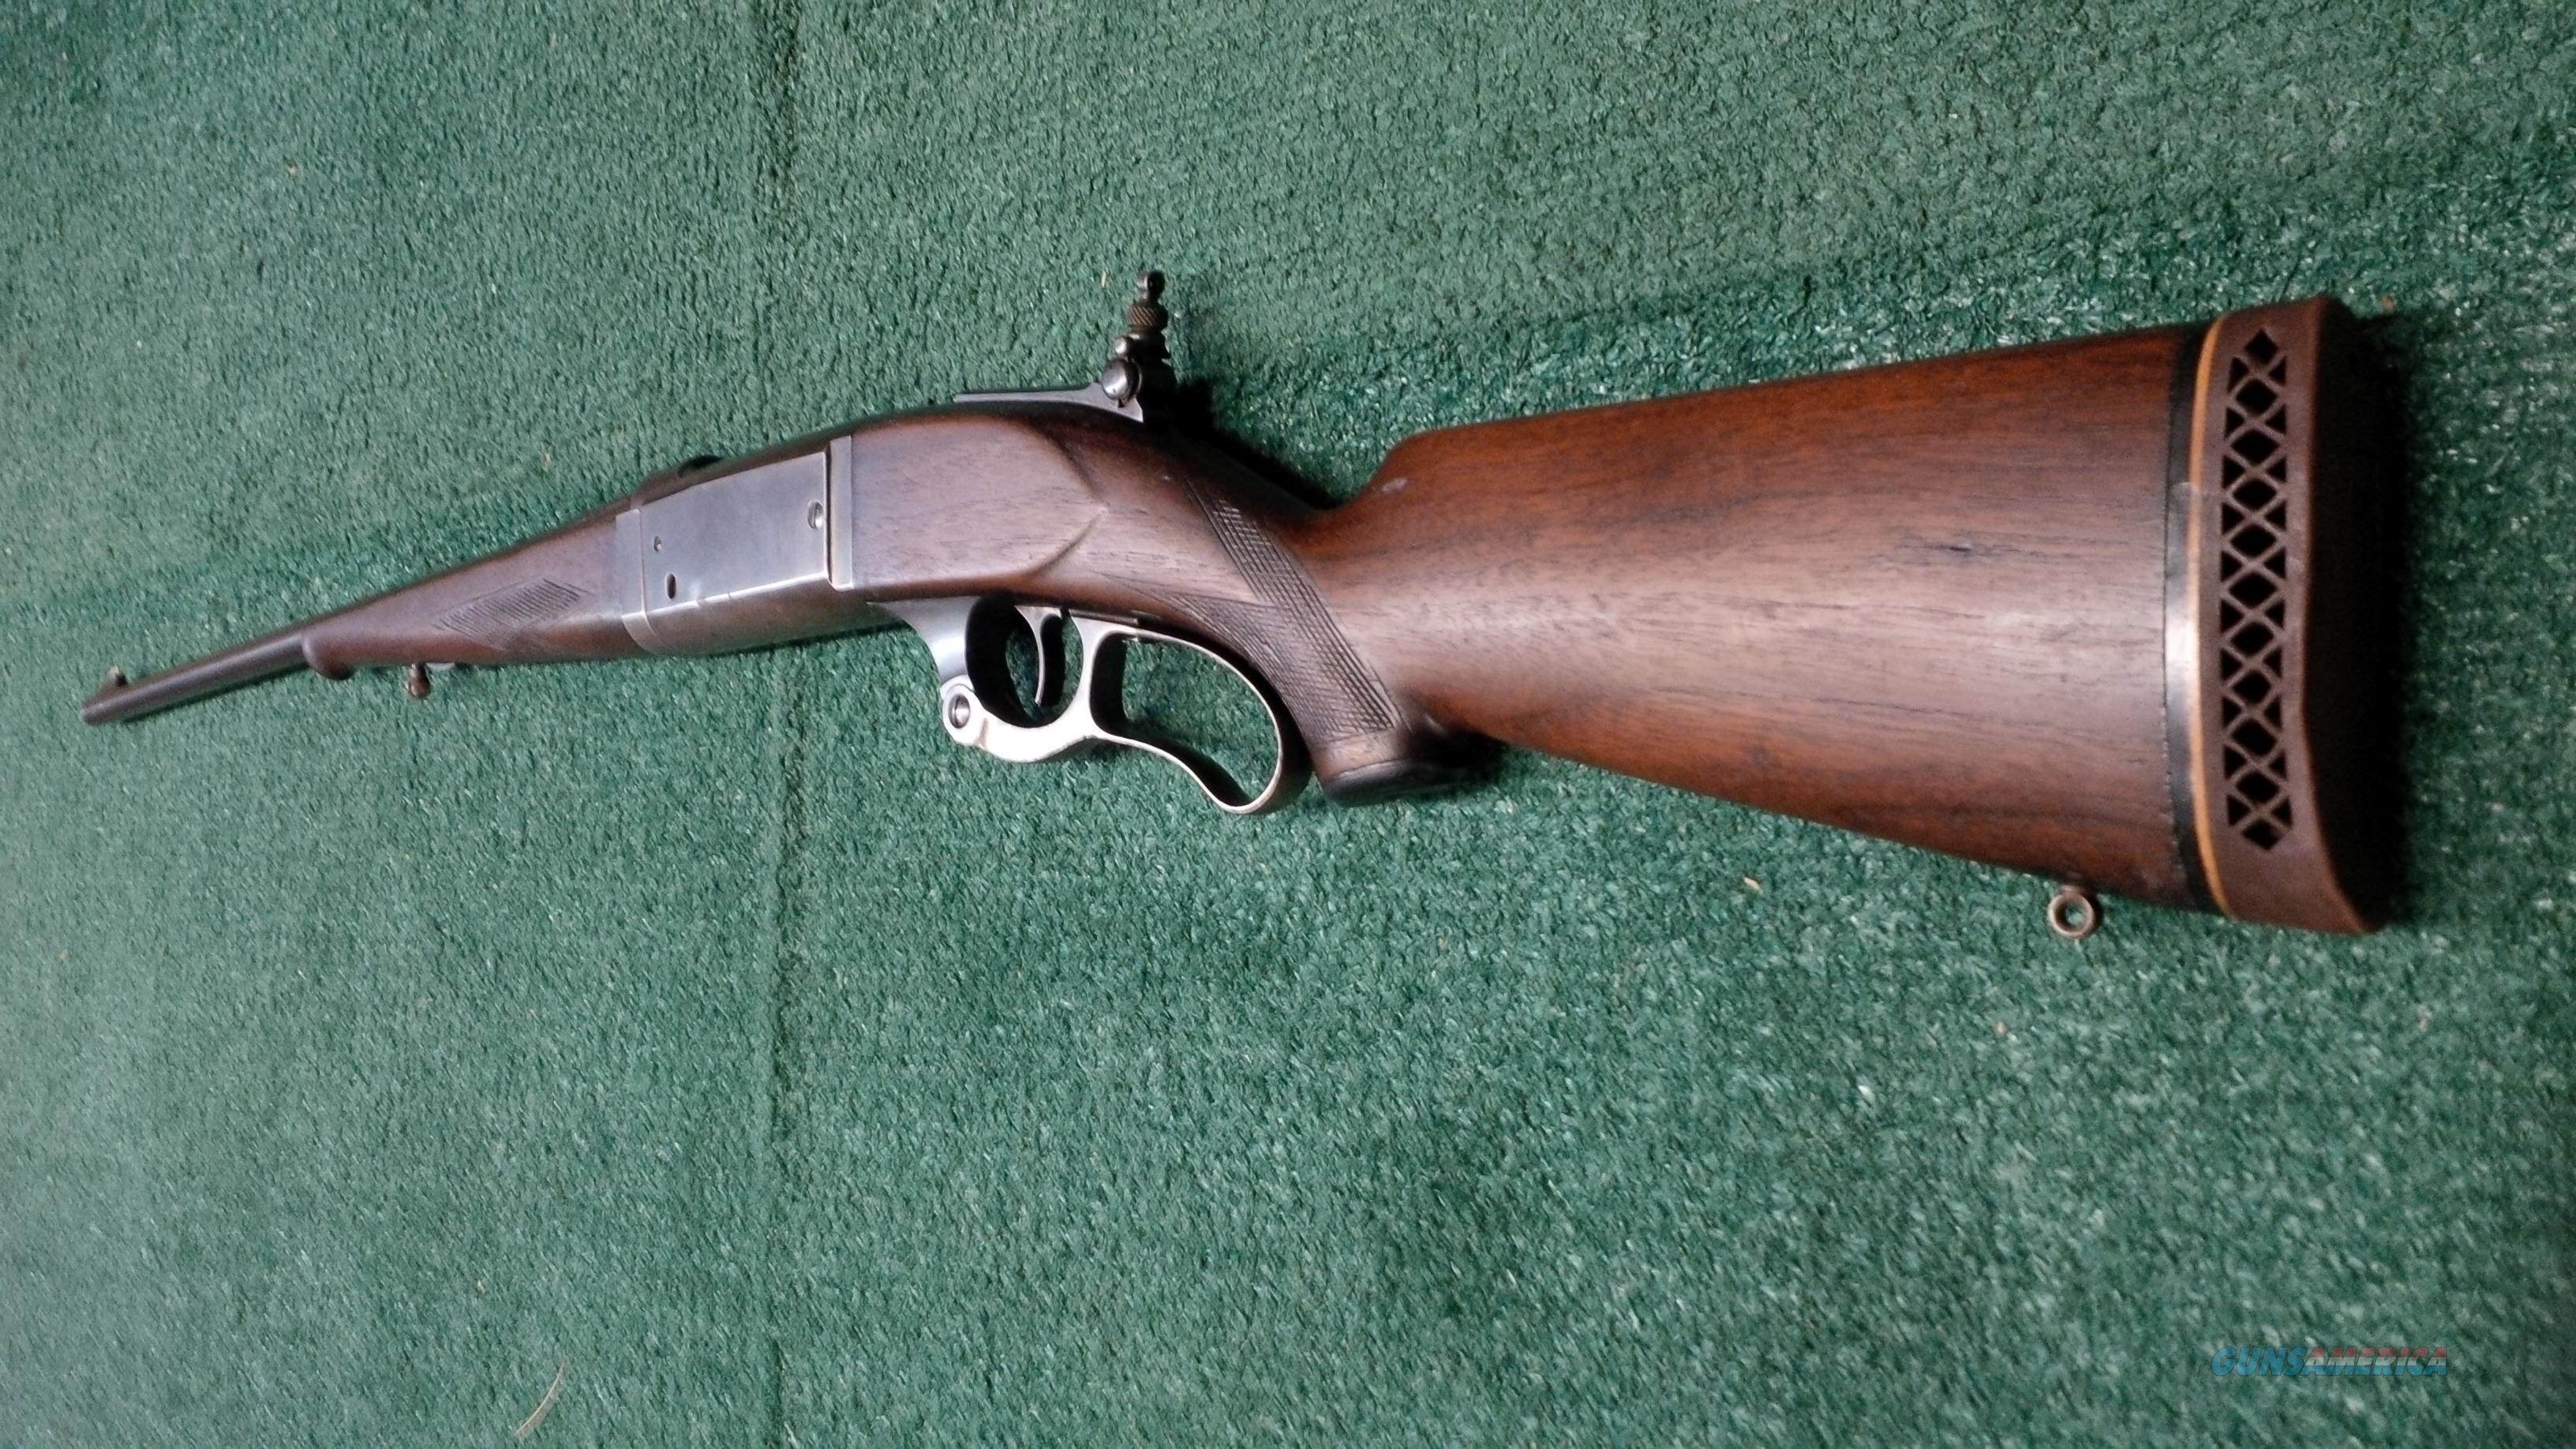 Savage Model 99 .30-.30 Winchester Take Down Lever Action Rifle PRICE REDUCED WAS $845. NOW $750.!!!   Guns > Rifles > Savage Rifles > Model 95/99 Family